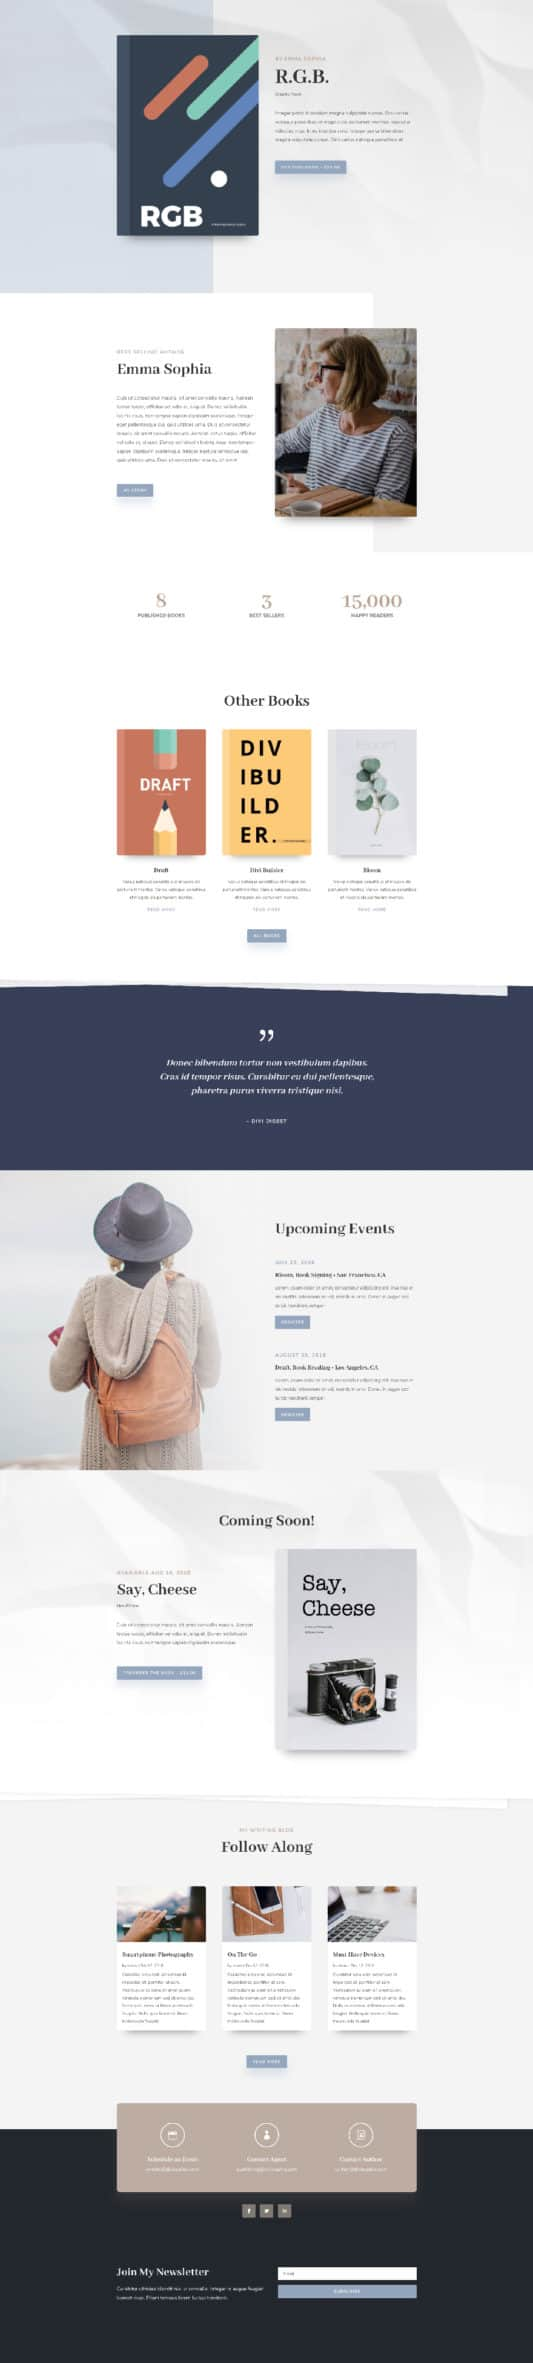 The Author Page Style: Homepage Design 1